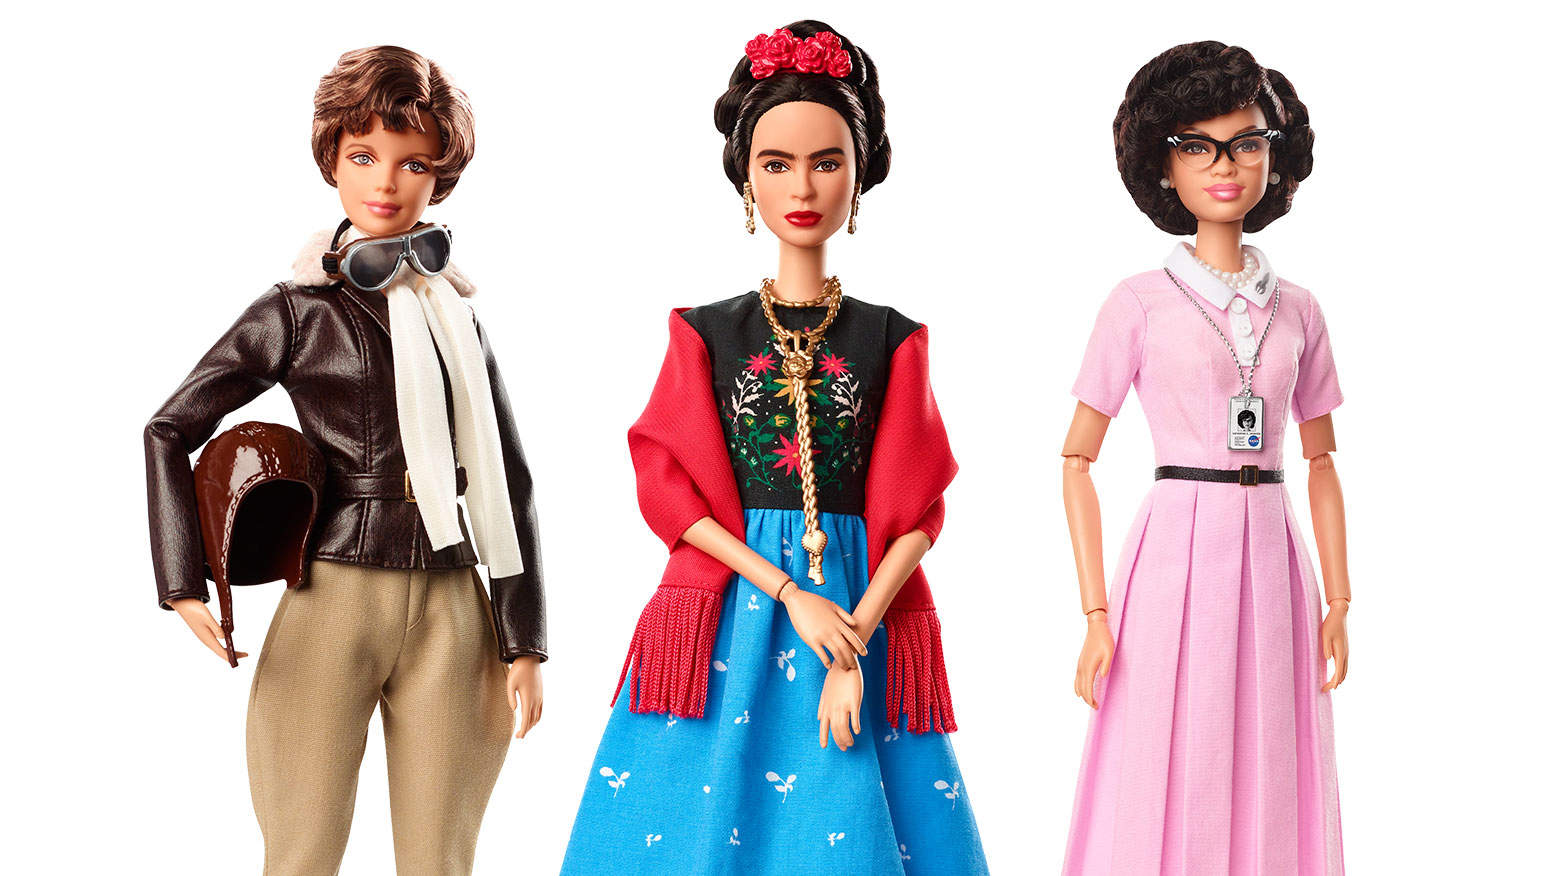 barbie-international-womens-day-role-models_inspiring-women